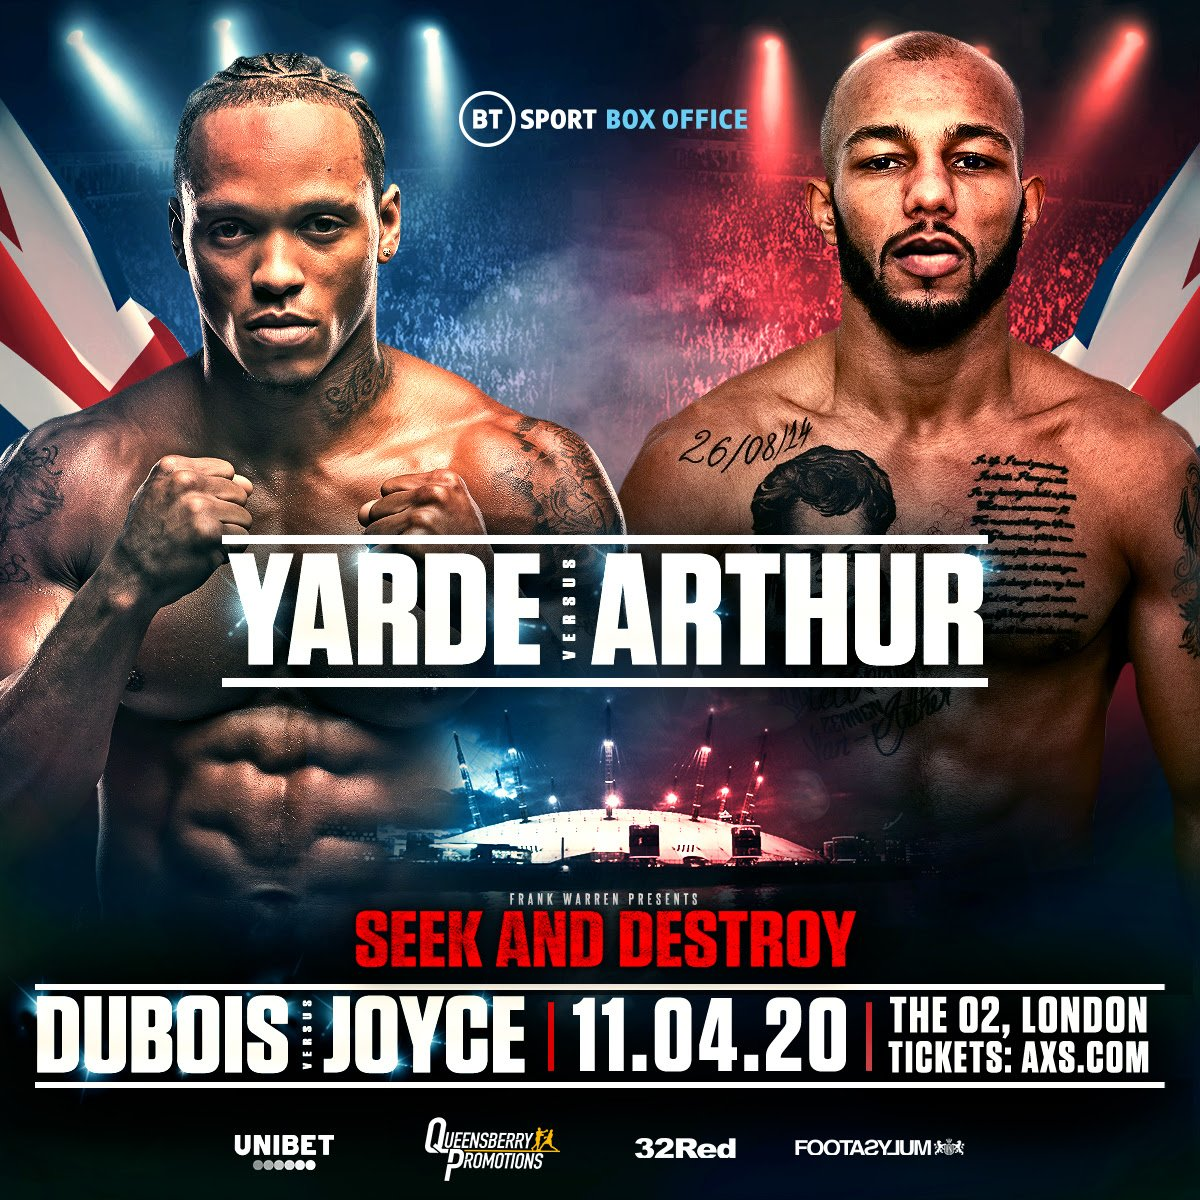 THE EAGERLY ANTICIPATED 'Seek and Destroy' showdown between Daniel Dubois and Joe Joyce at the o2 Arena on April 11 now has a blockbuster chief support in place with Anthony Yarde set to take on the unbeaten Lyndon Arthur.